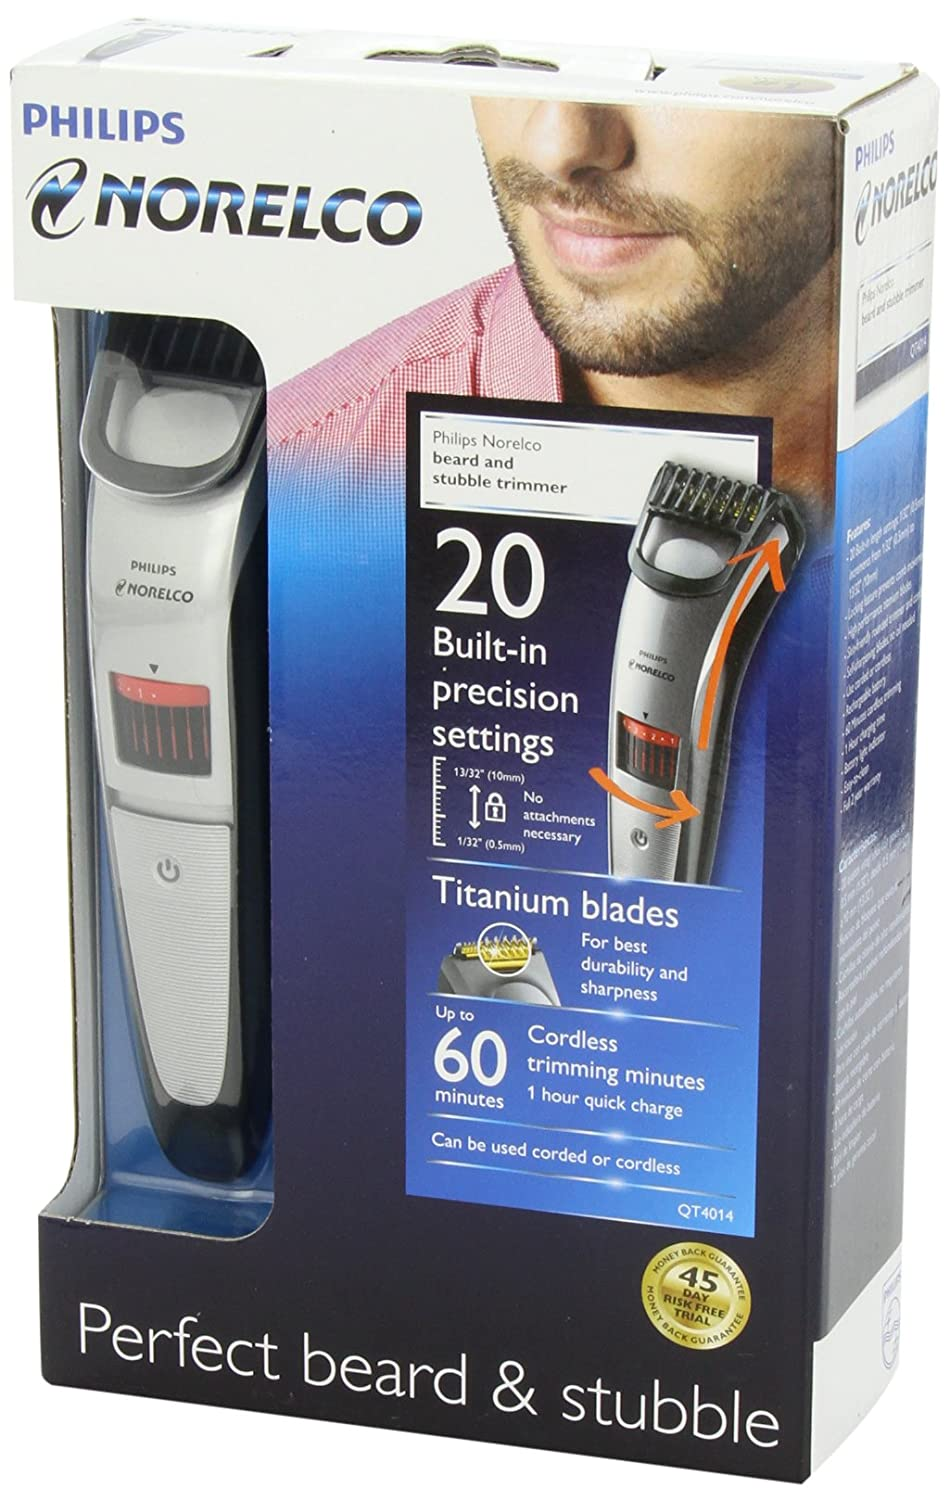 philips norelco qt4014 42 beard trimmer 3500 lazada malaysia. Black Bedroom Furniture Sets. Home Design Ideas